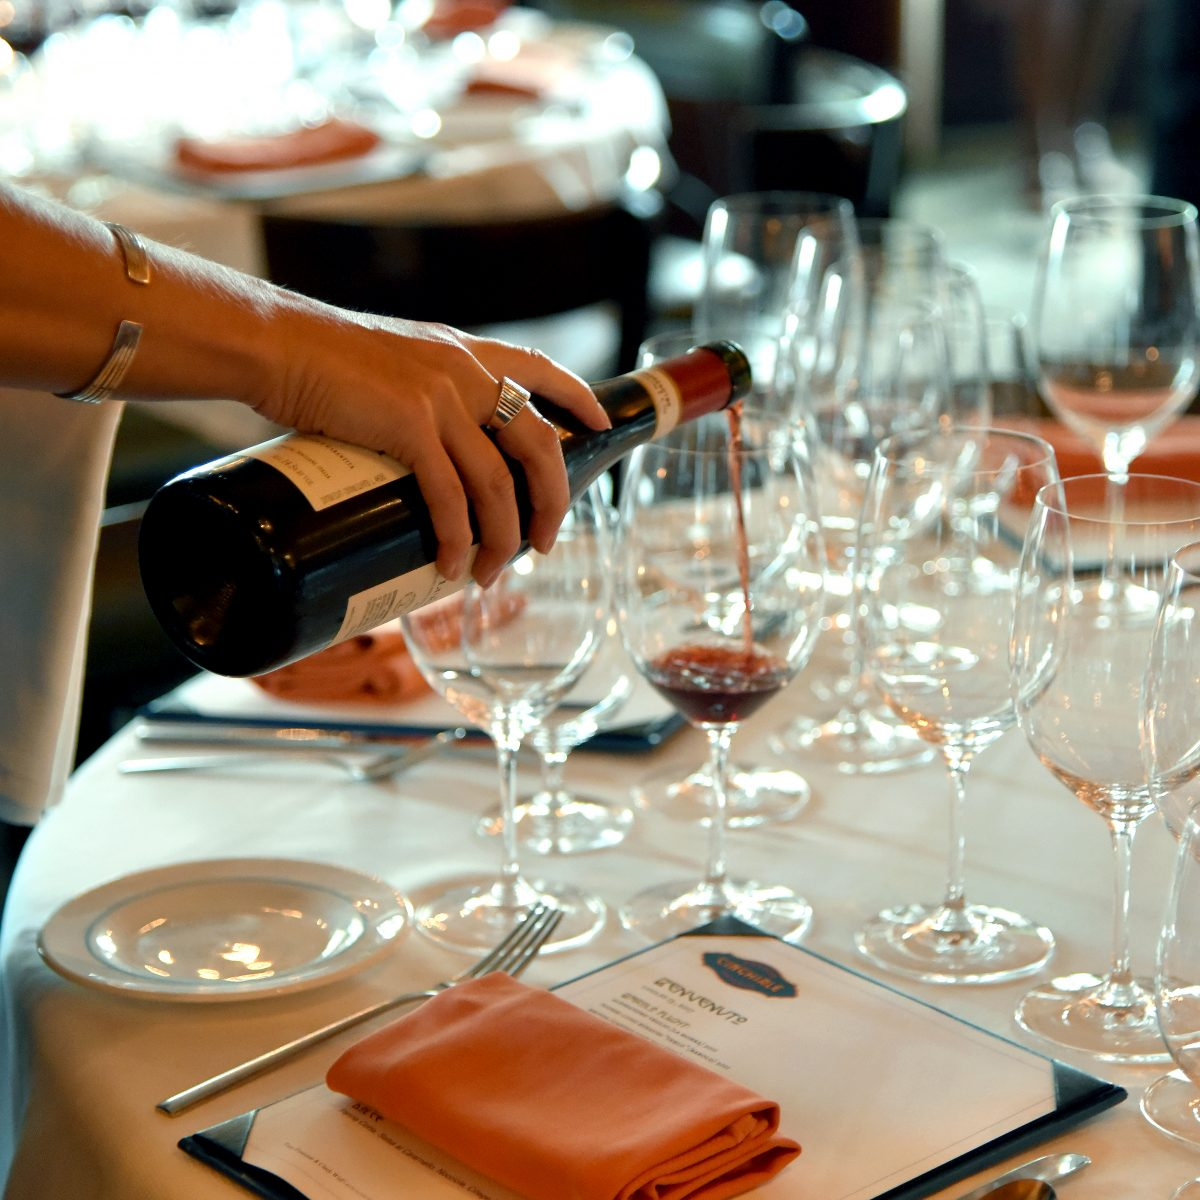 Woman pouring red wine into a glass among many glasses on an elegantly set table